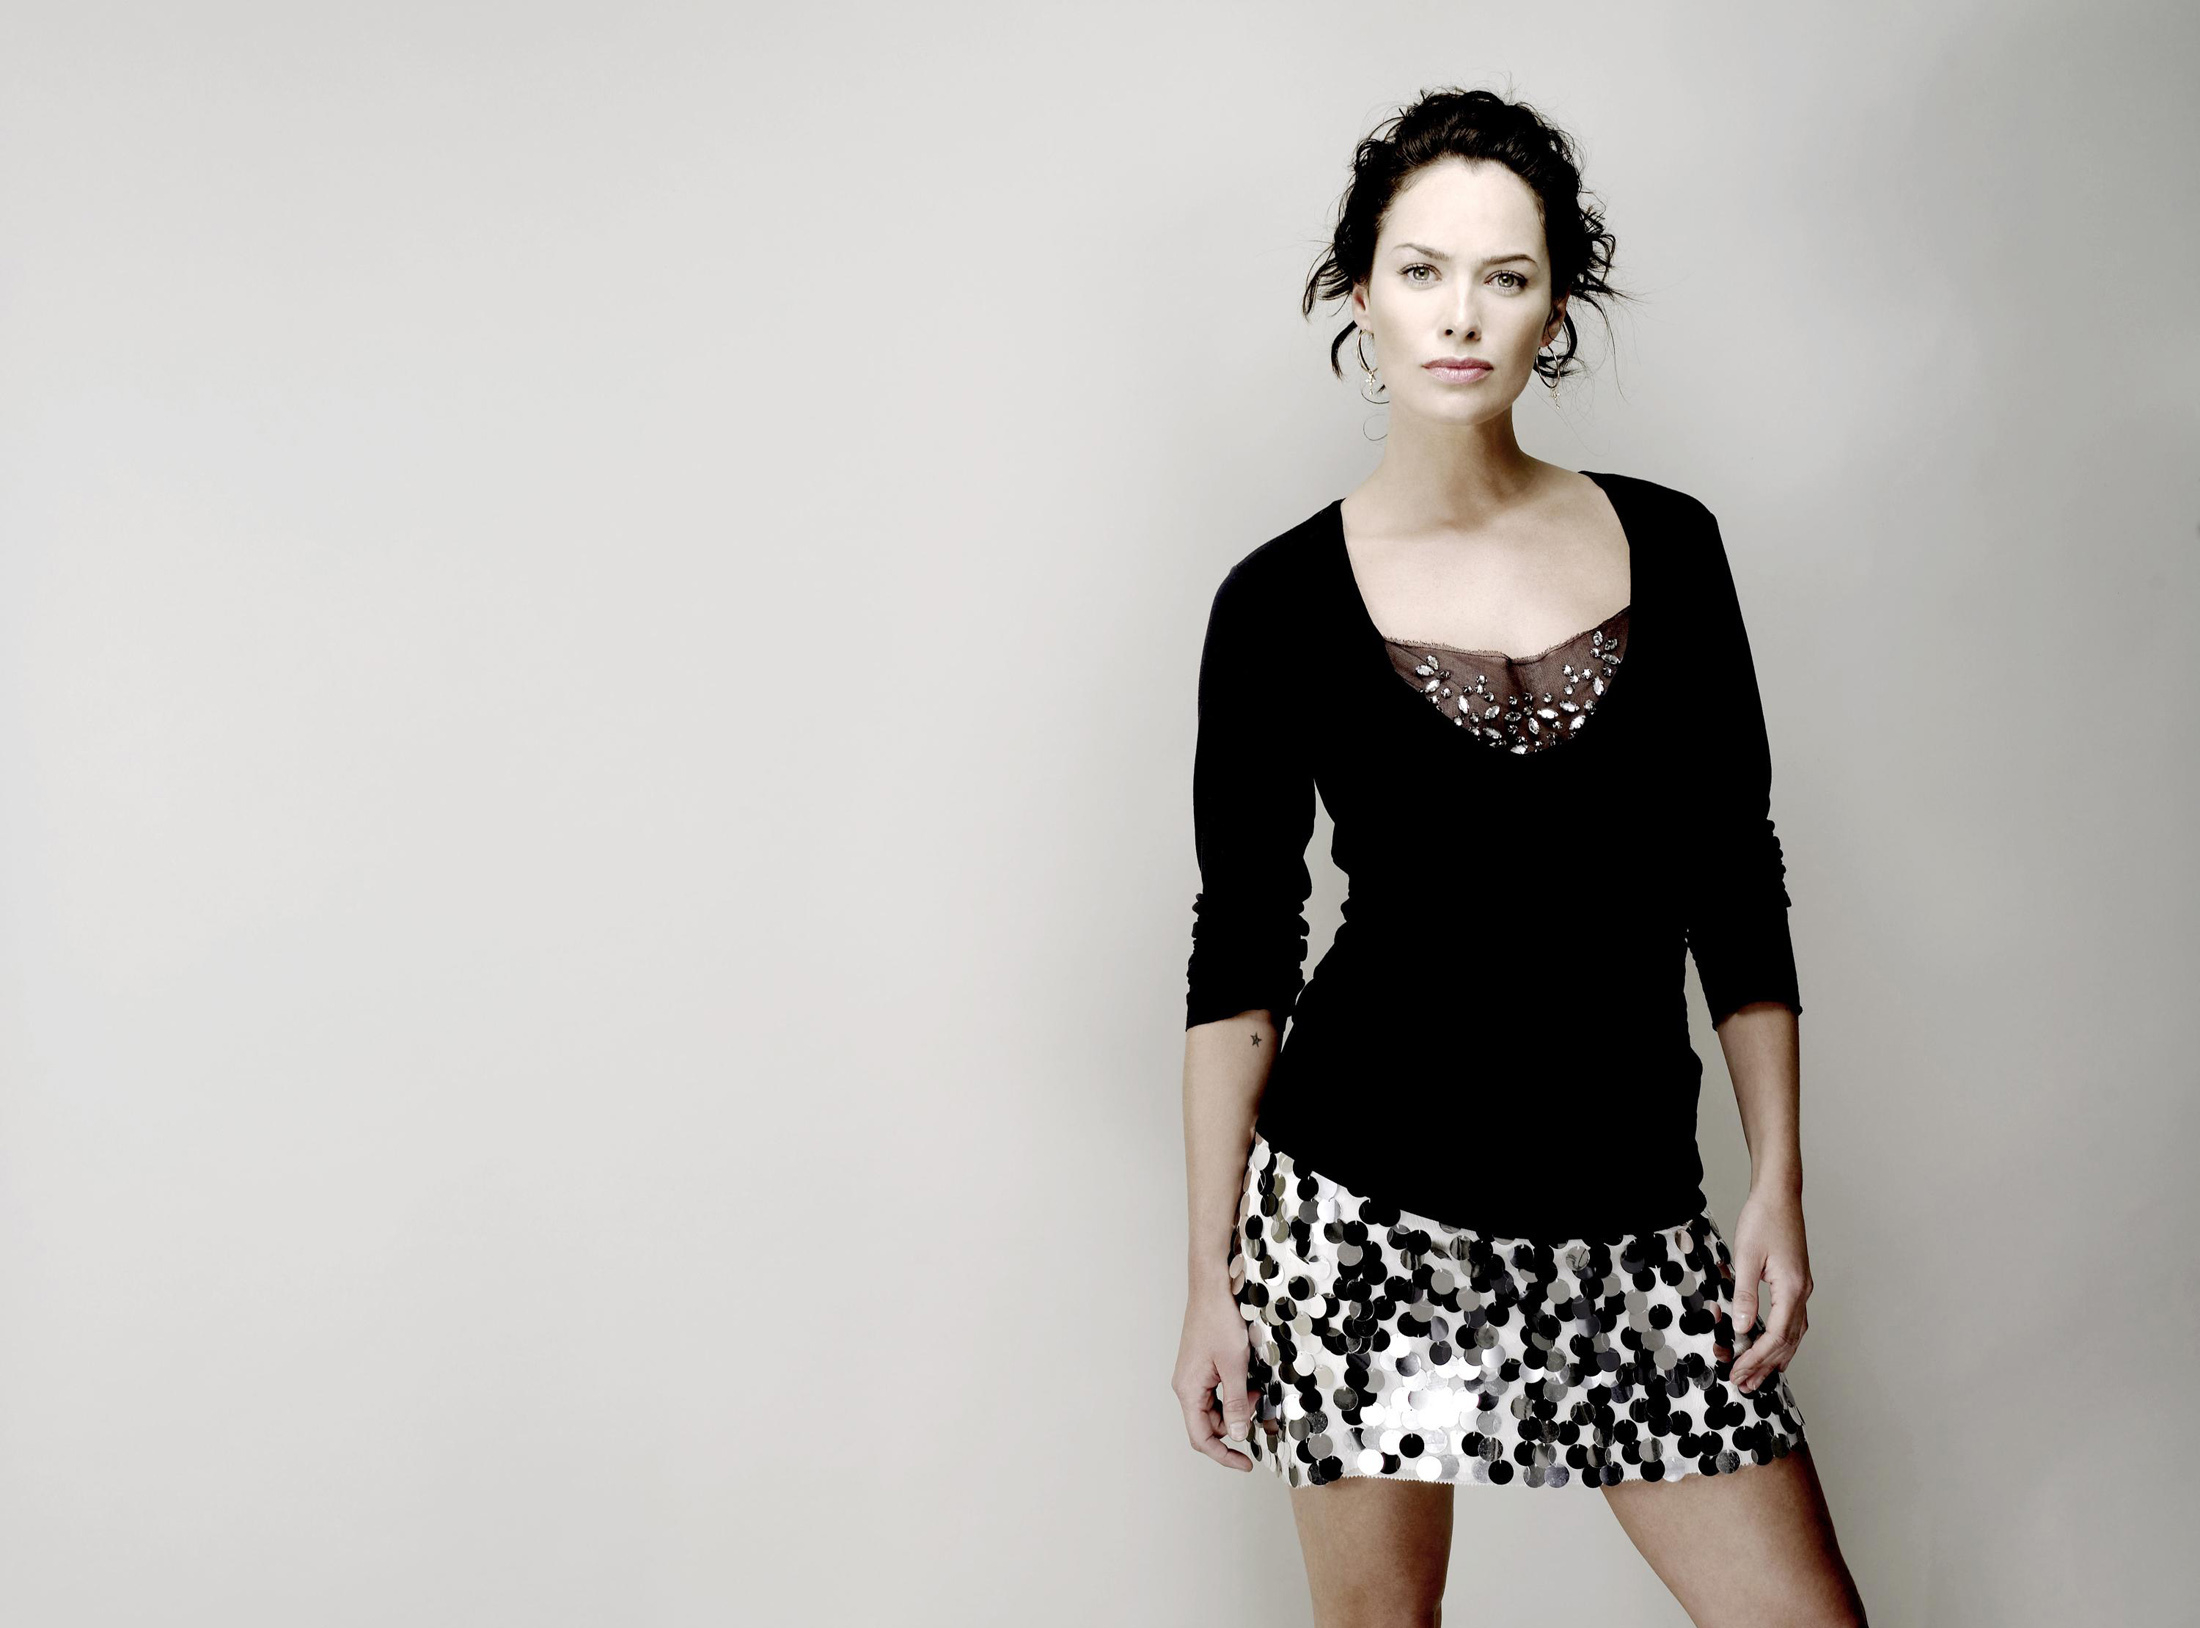 Lena Headey Wallpapers Pictures Images